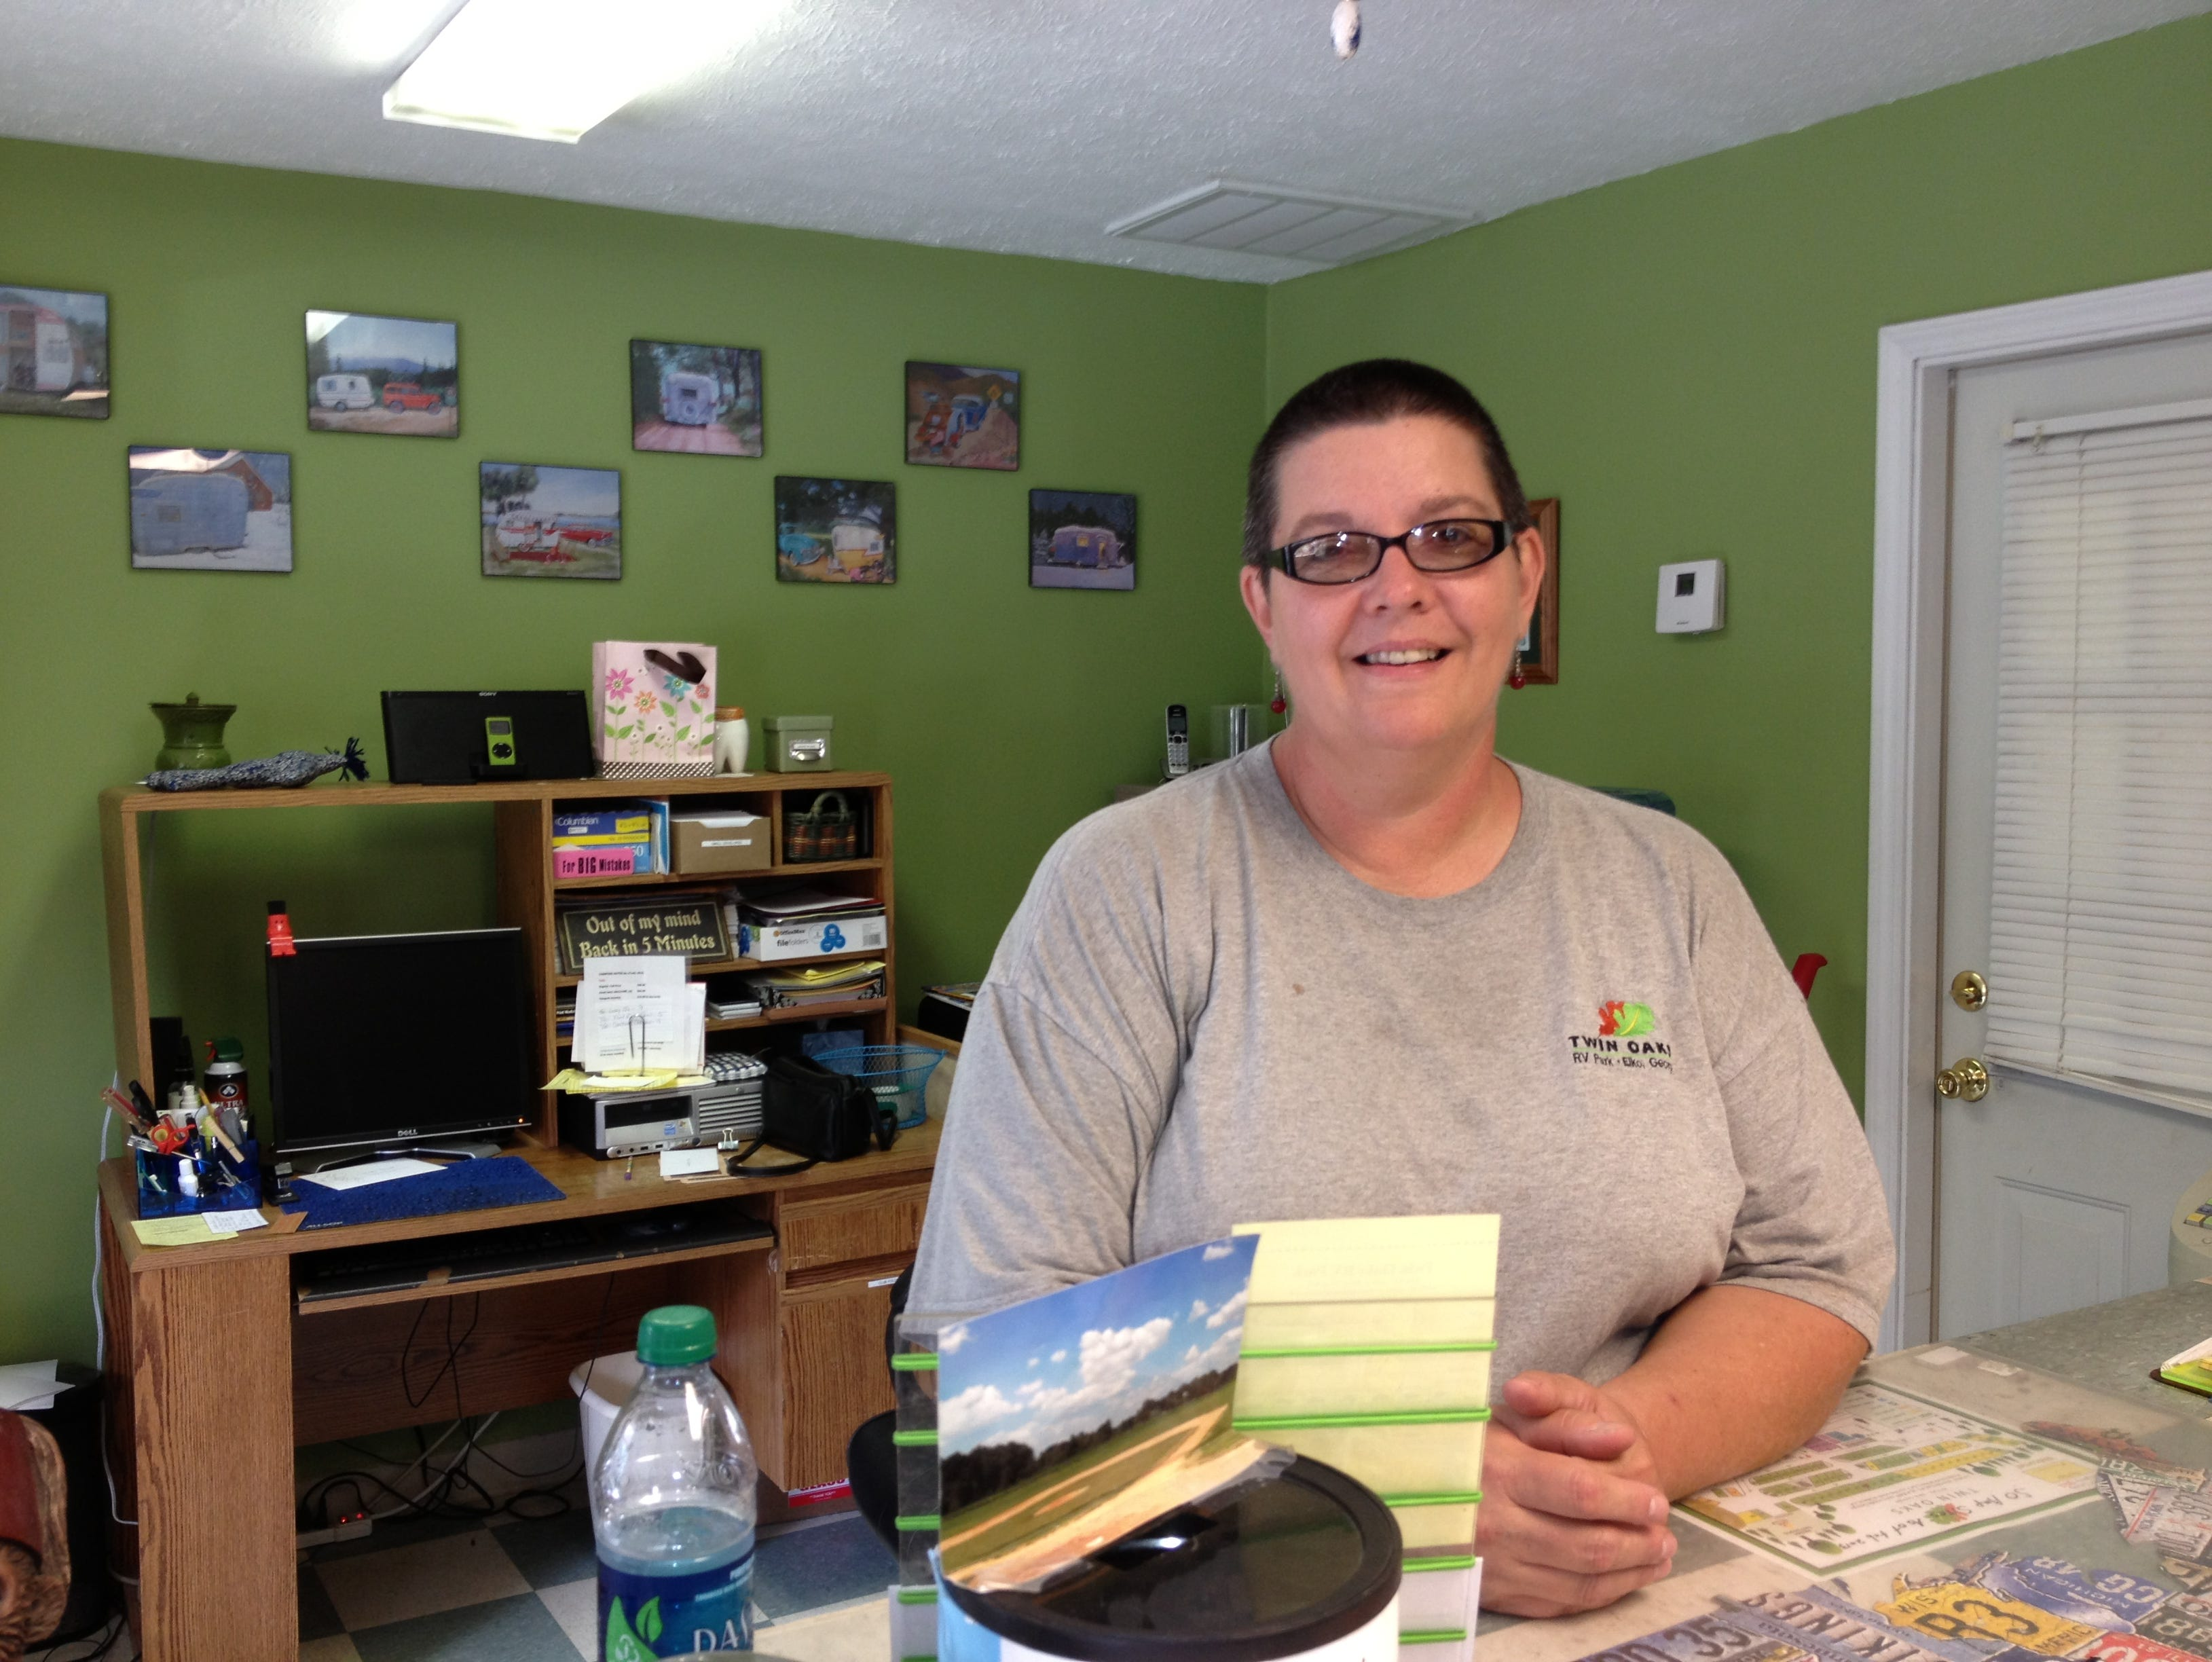 Lisa Gannaway, co-manager of Twin Oaks, welcomes guests to Twin Oaks RV camp in Elko, Ga.